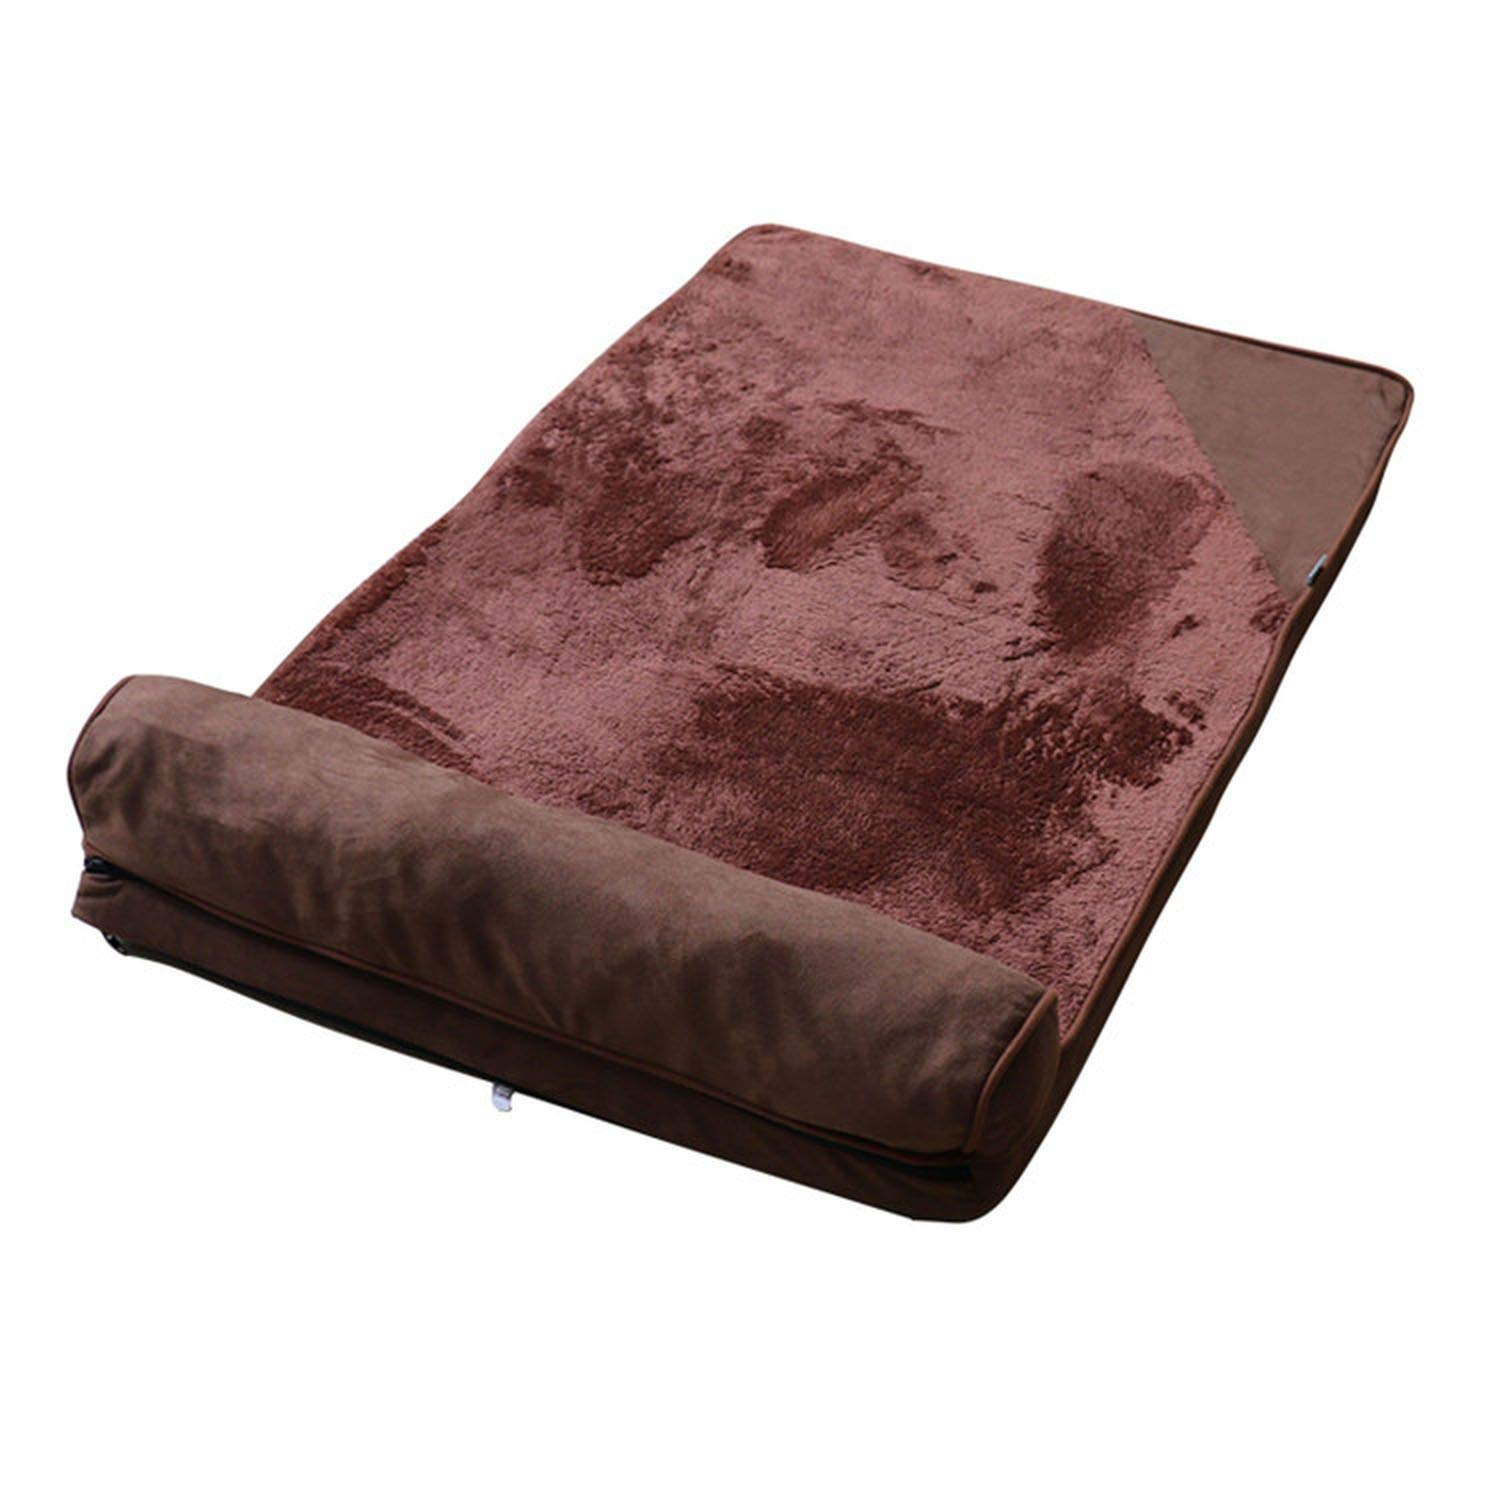 Brown L 100x65cm brown L 100x65cm CHUNXU Dog Beds for Large Dogs House Sofa Kennel Square Pillow Husky Labrador Teddy Large Dogs Cat House Beds Mat,brown,L 100x65cm